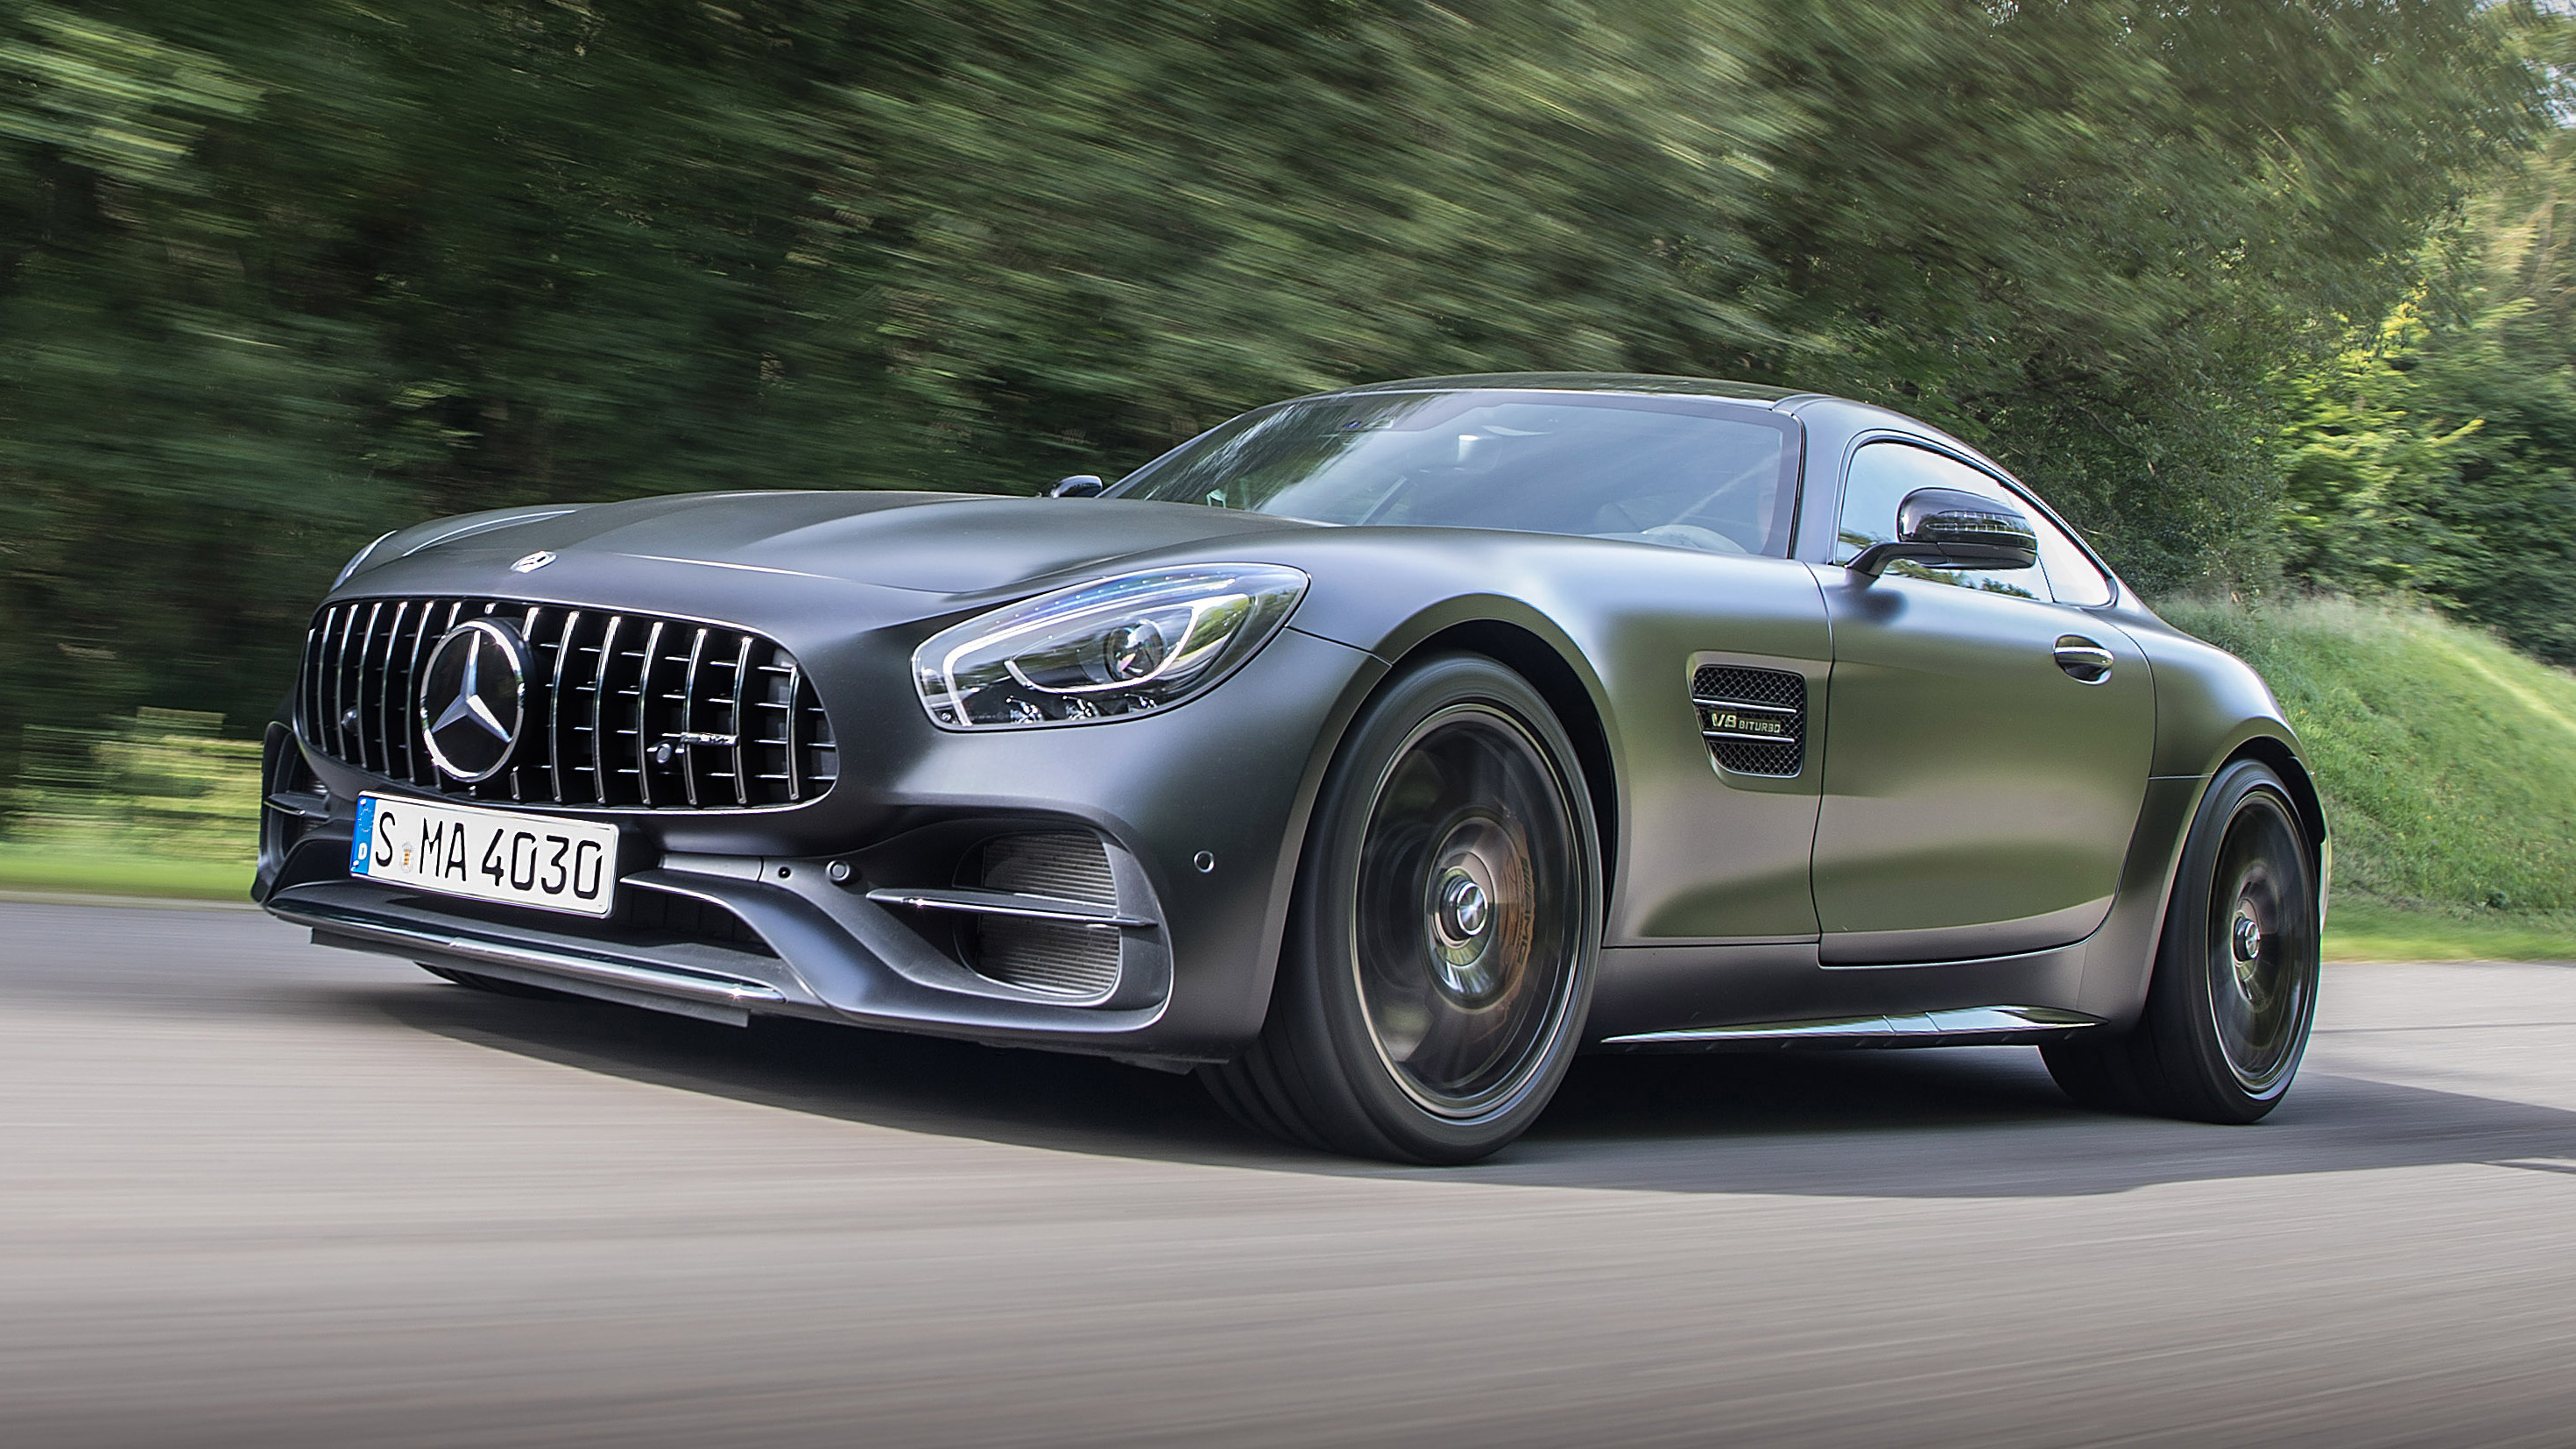 Mercedes-Benz AMG GT front three quarters